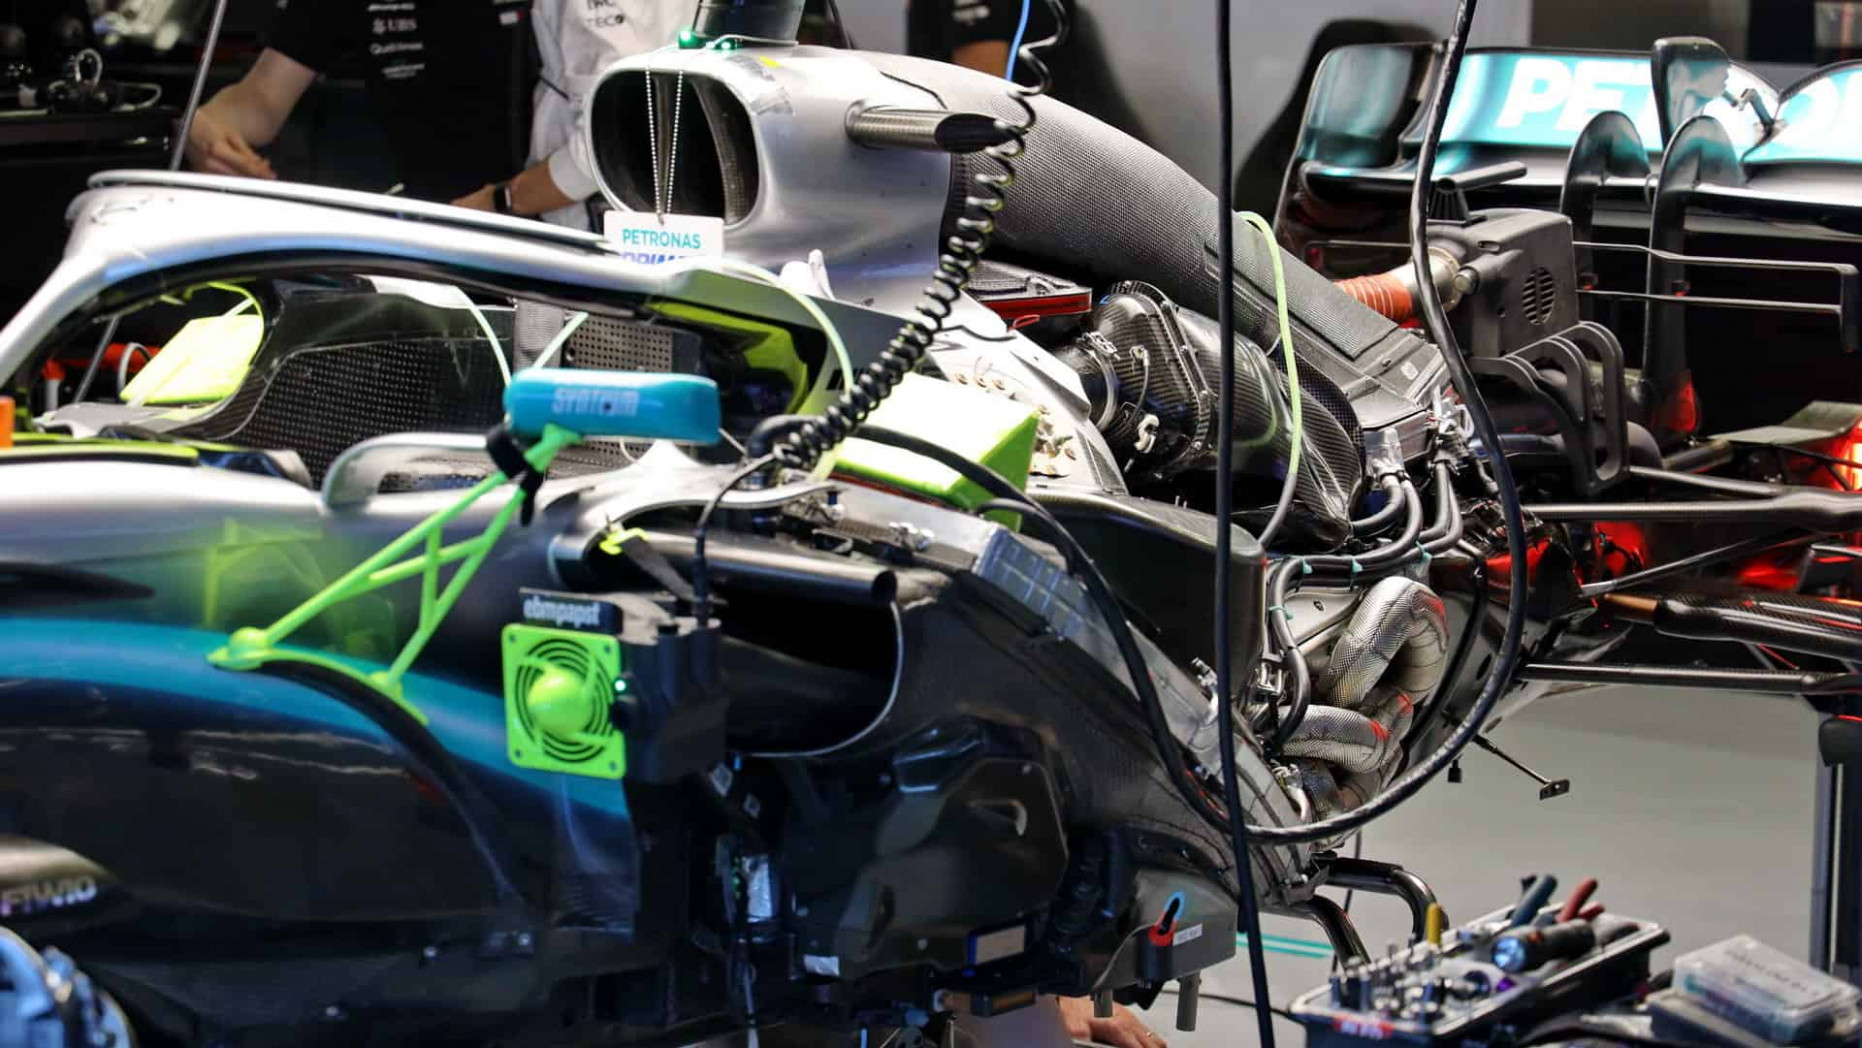 Mercedes, McLaren and Ferrari fire up their new 100 F10 cars - ferrari 2020 engine fire up